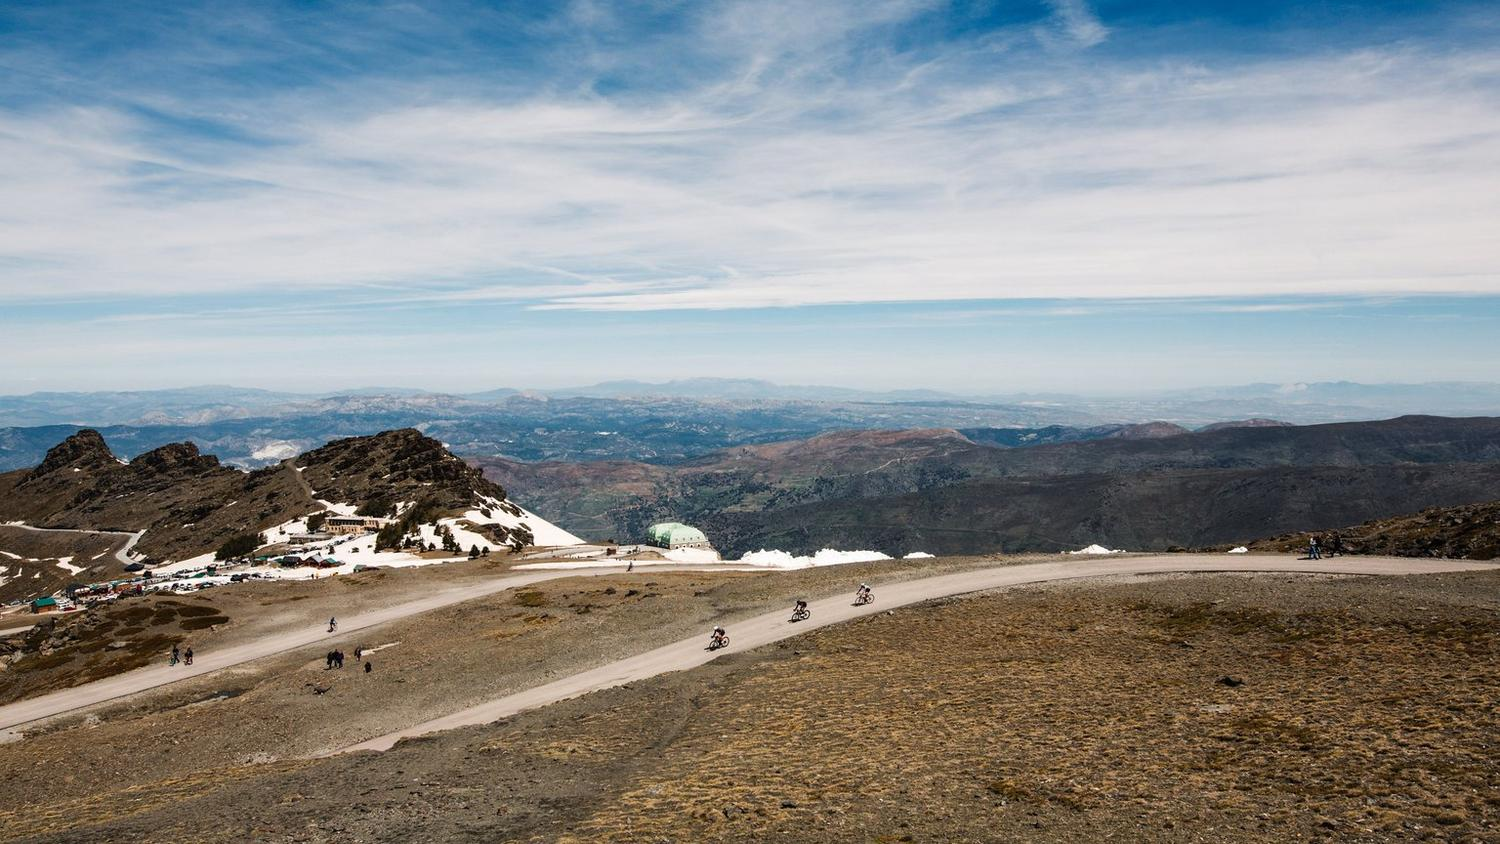 Summits with the Rapha Cycling Club are the highlight of our members' riding calendars. Together, we descend on the world's greatest cycling destinations to explore roads seldom ridden in stunning mountain settings.